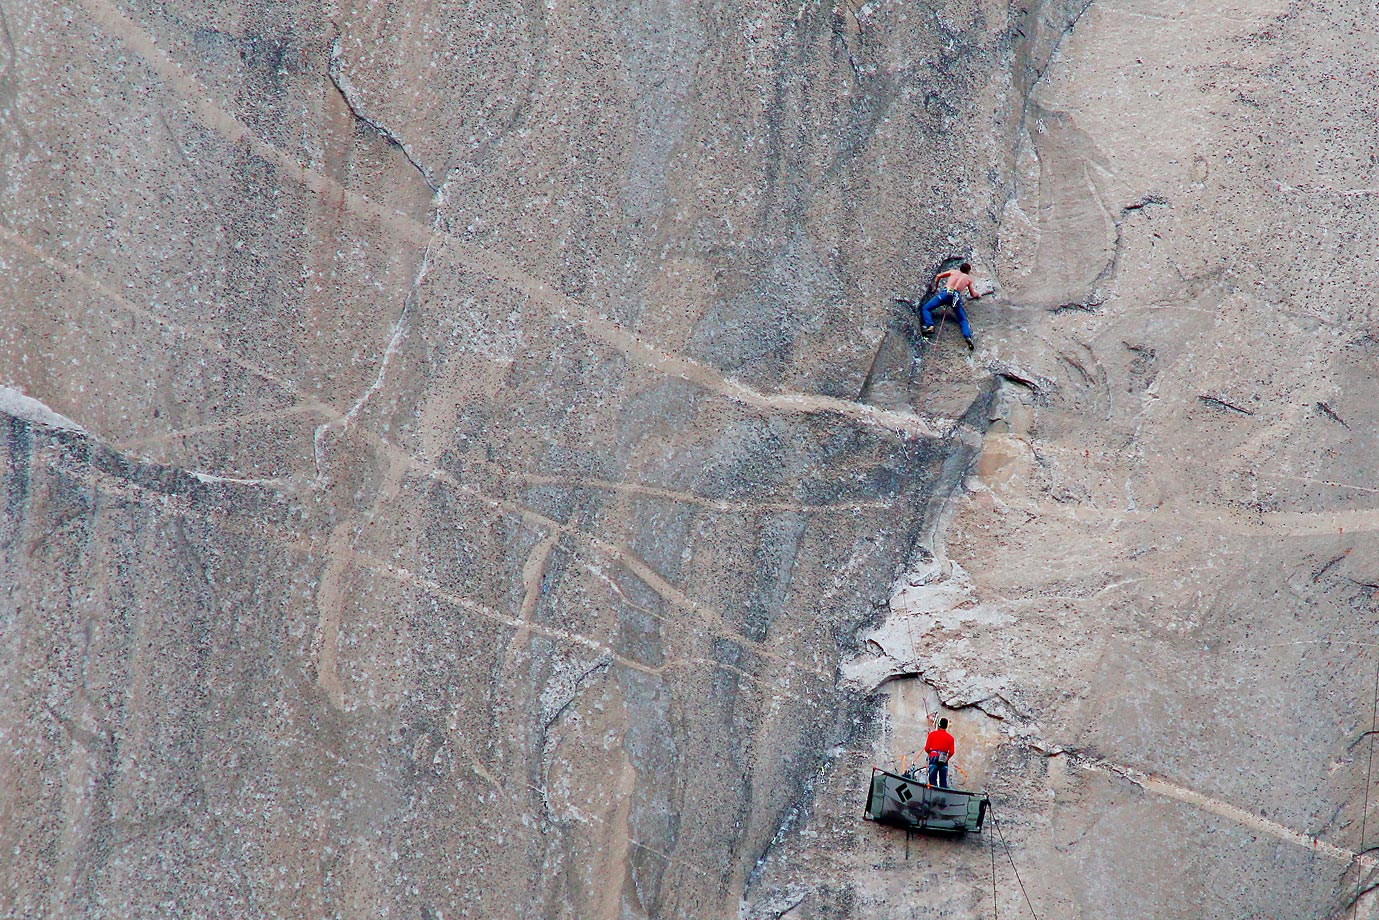 Tommy Caldwell (shirtless) climbing Pitch 17 and Kevin Jorgeson (in red) is belaying.